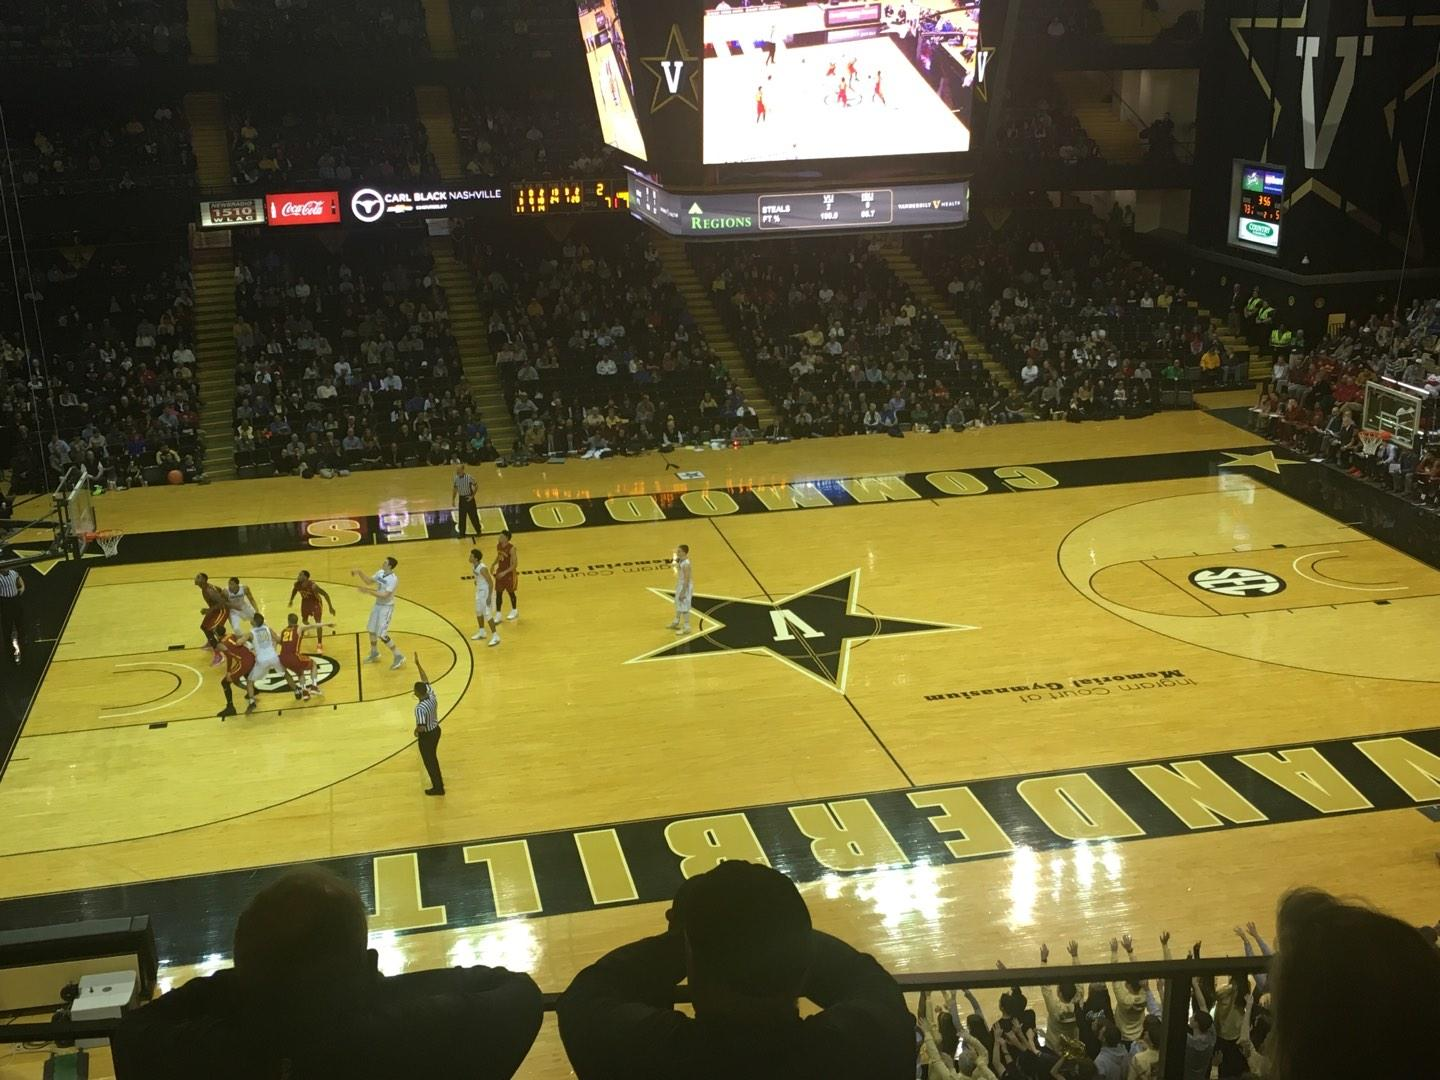 Memorial Gymnasium (Vanderbilt) Section 3J Row 5 Seat 9